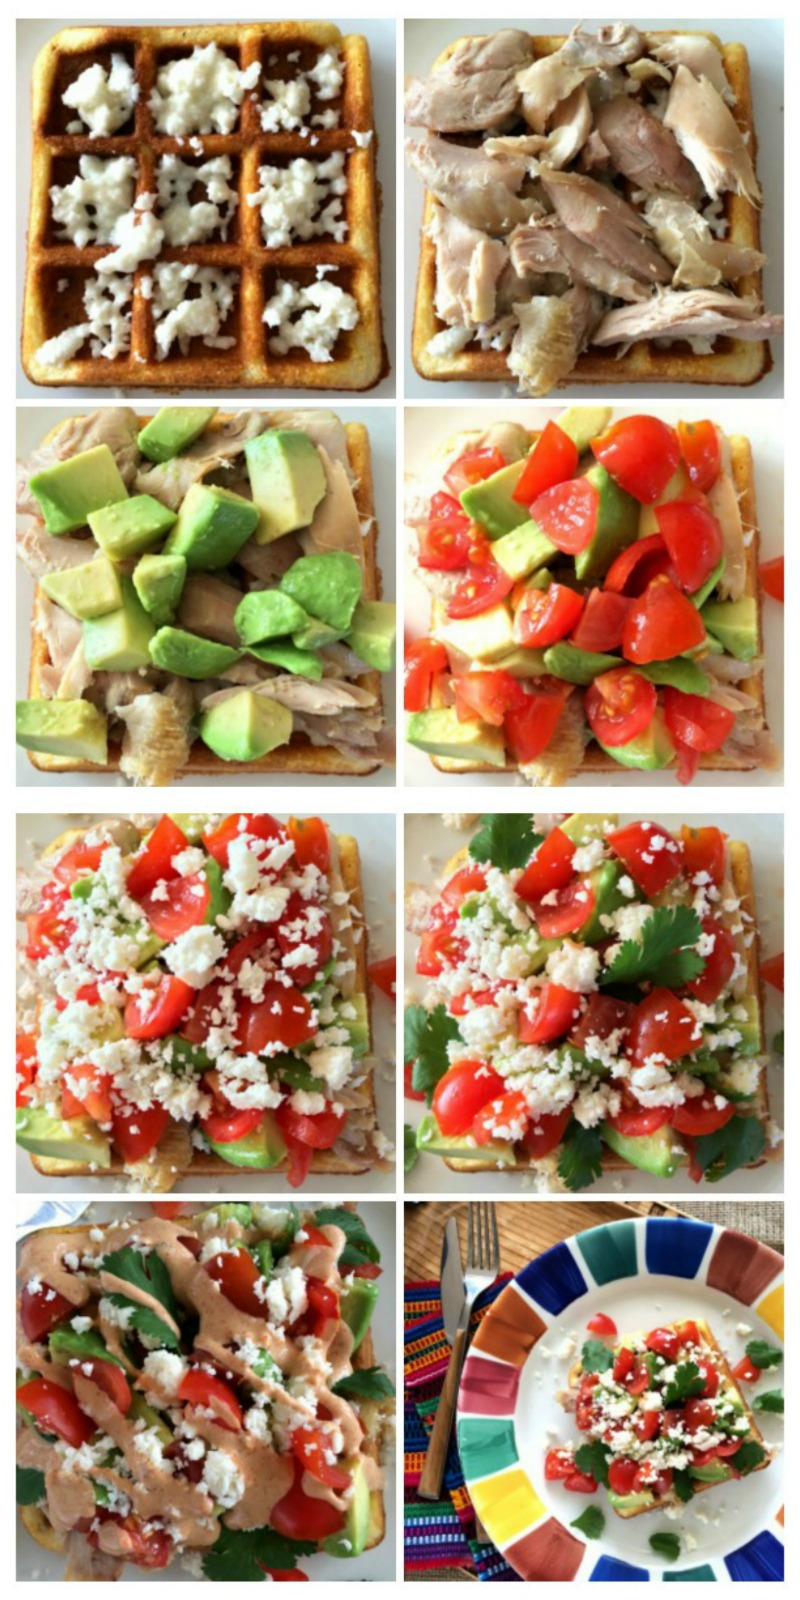 Assembling Cornbread Waffles with Chicken, Avocado and Sweet and Spicy Crema